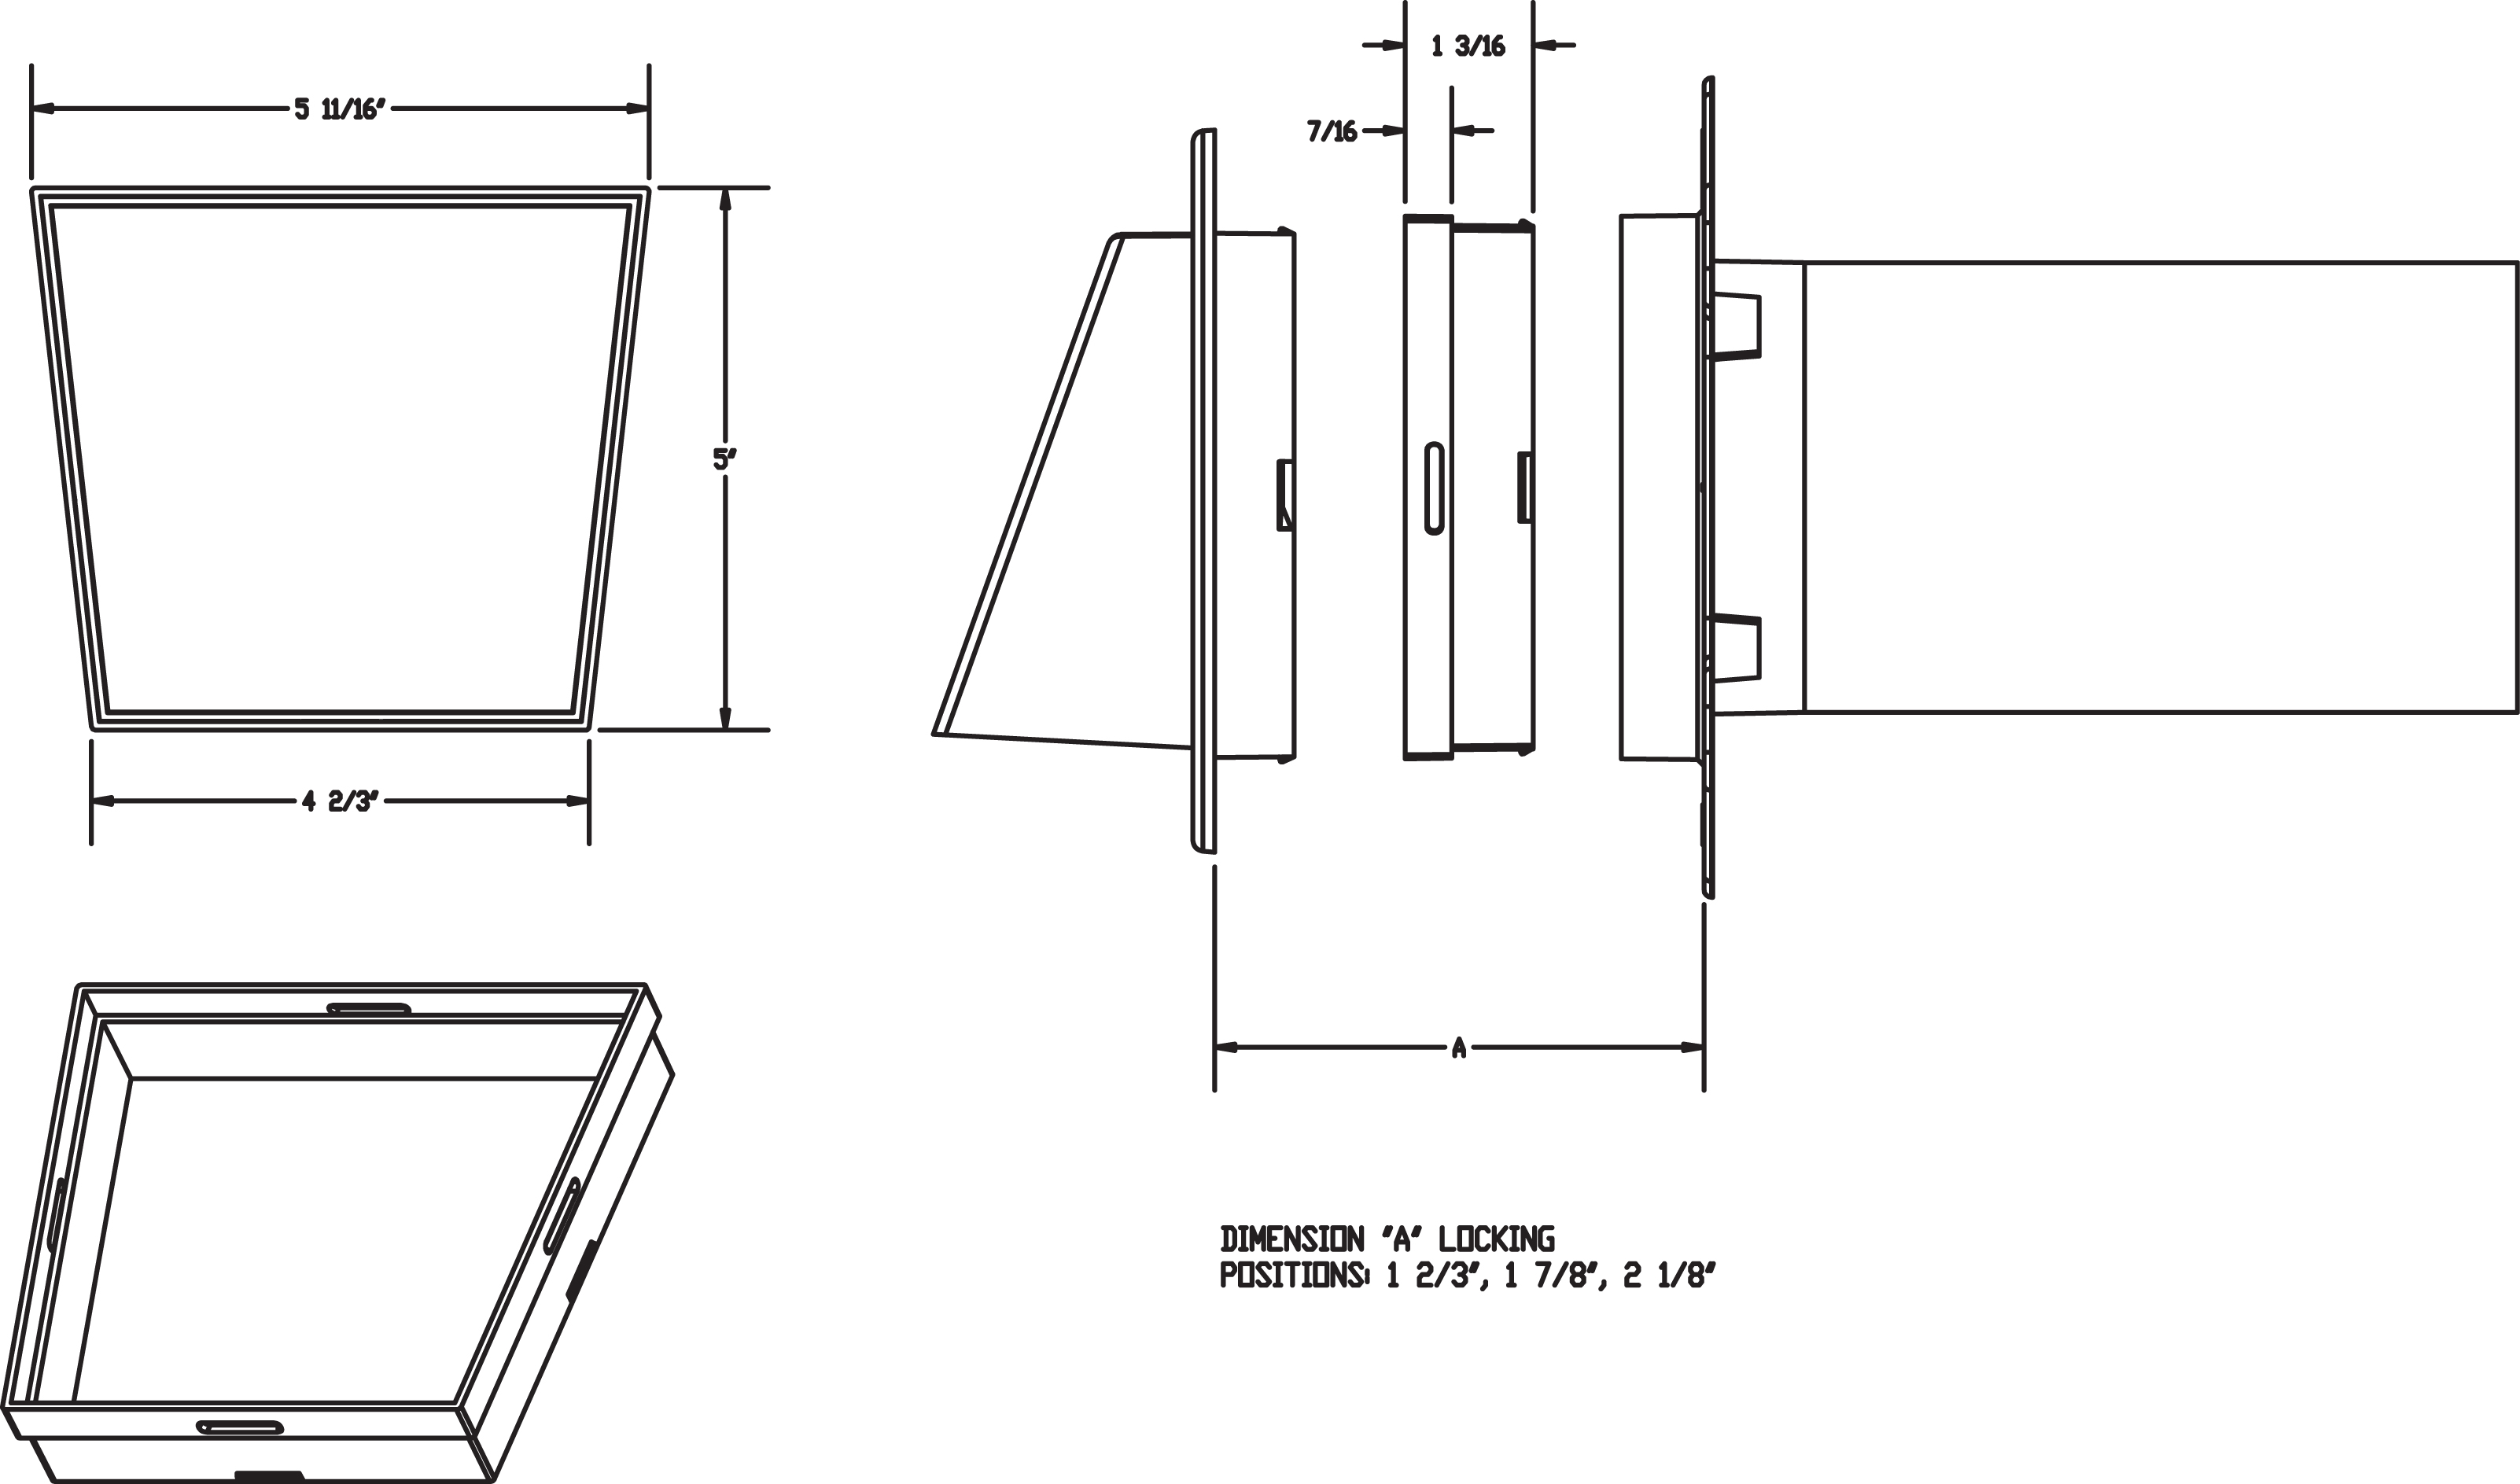 Midamerica Utility Vents For Insulated Siding